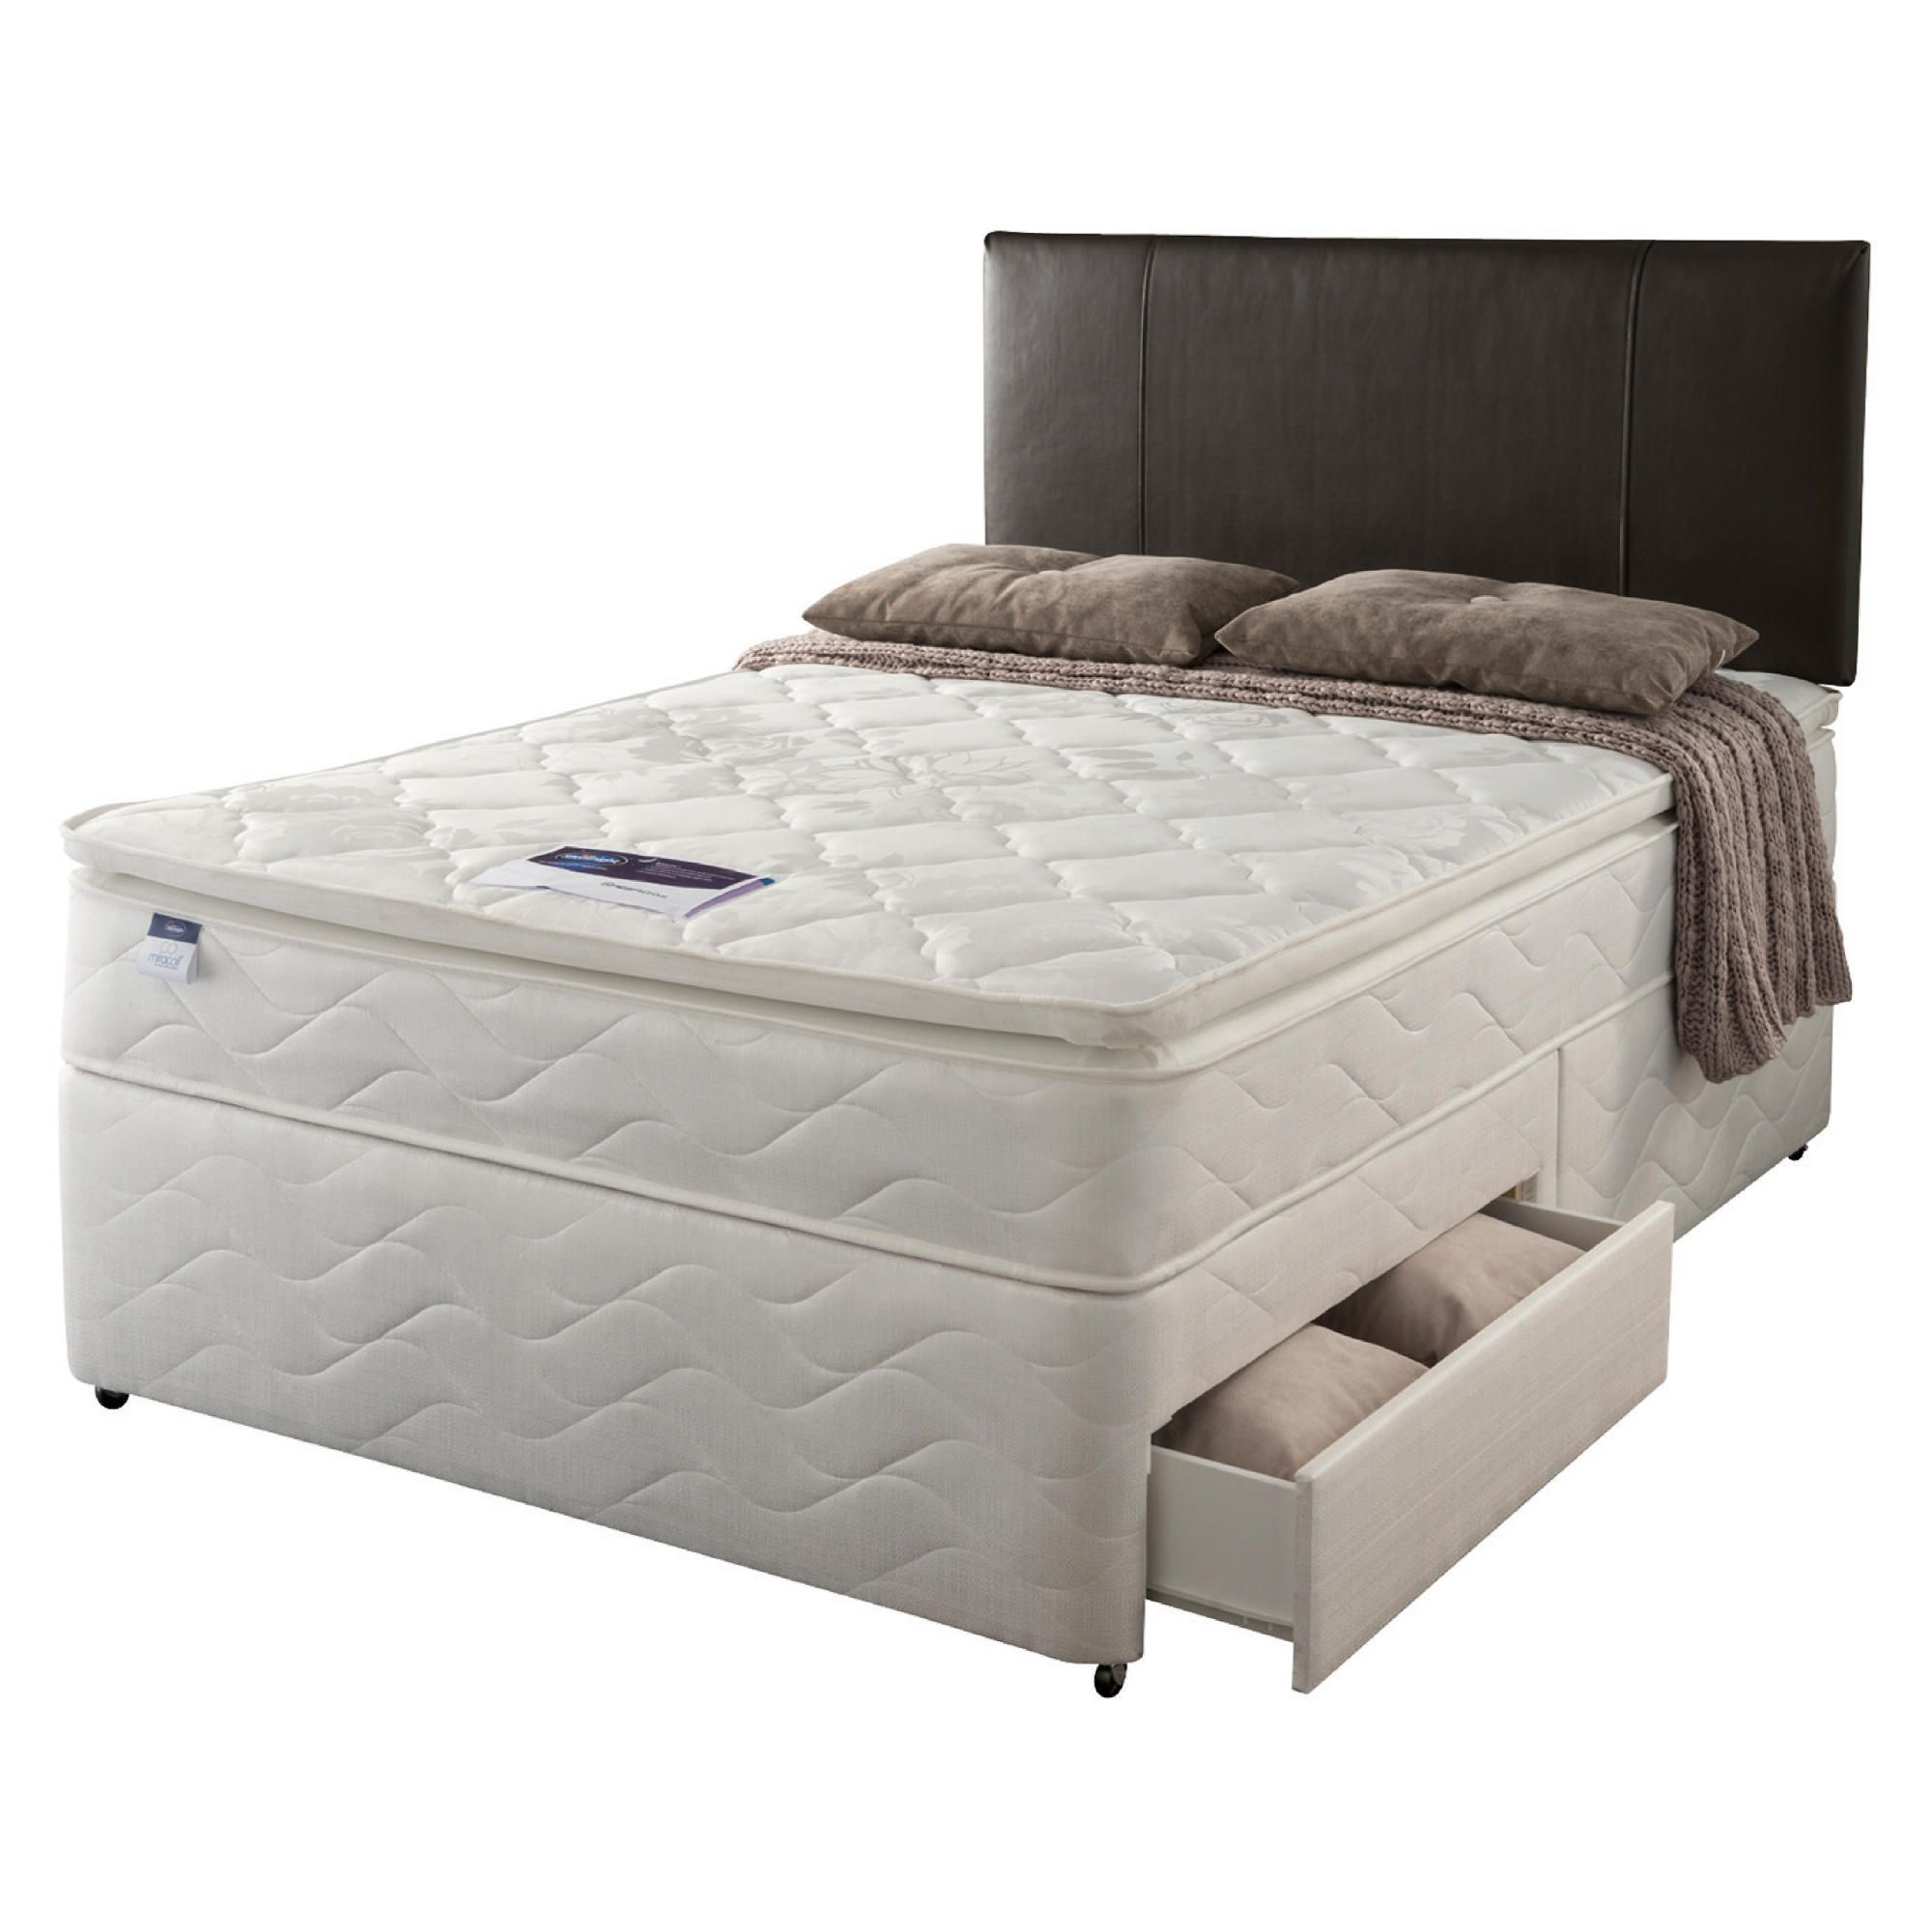 Silentnight Miracoil Pillowtop Fiji King 4 Drawer Divan set at Tescos Direct